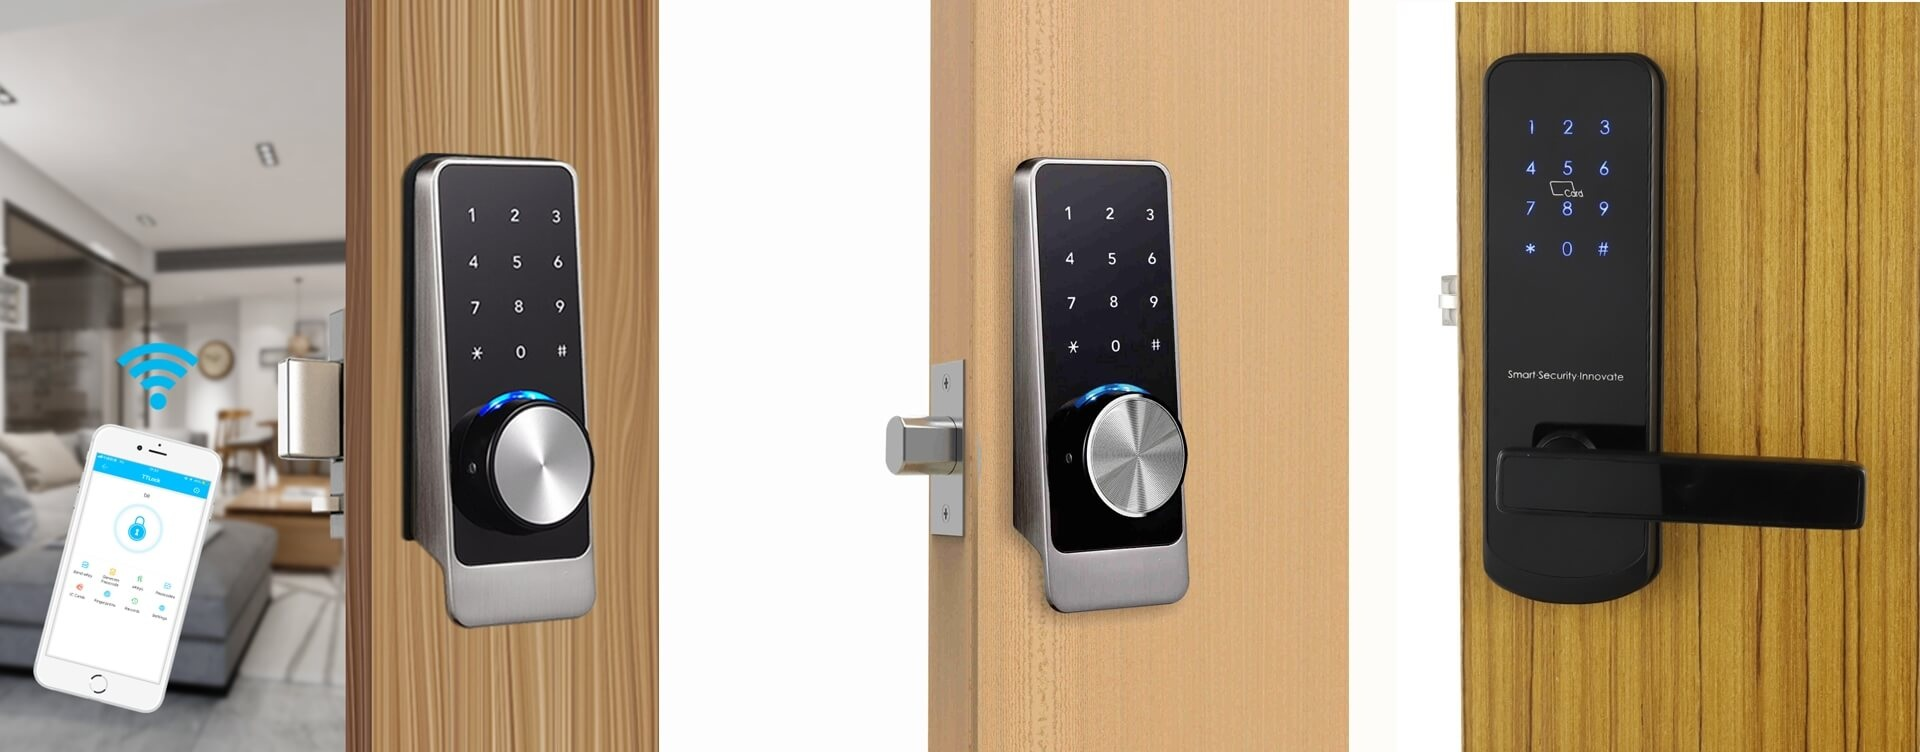 smart bluetooth door lock application